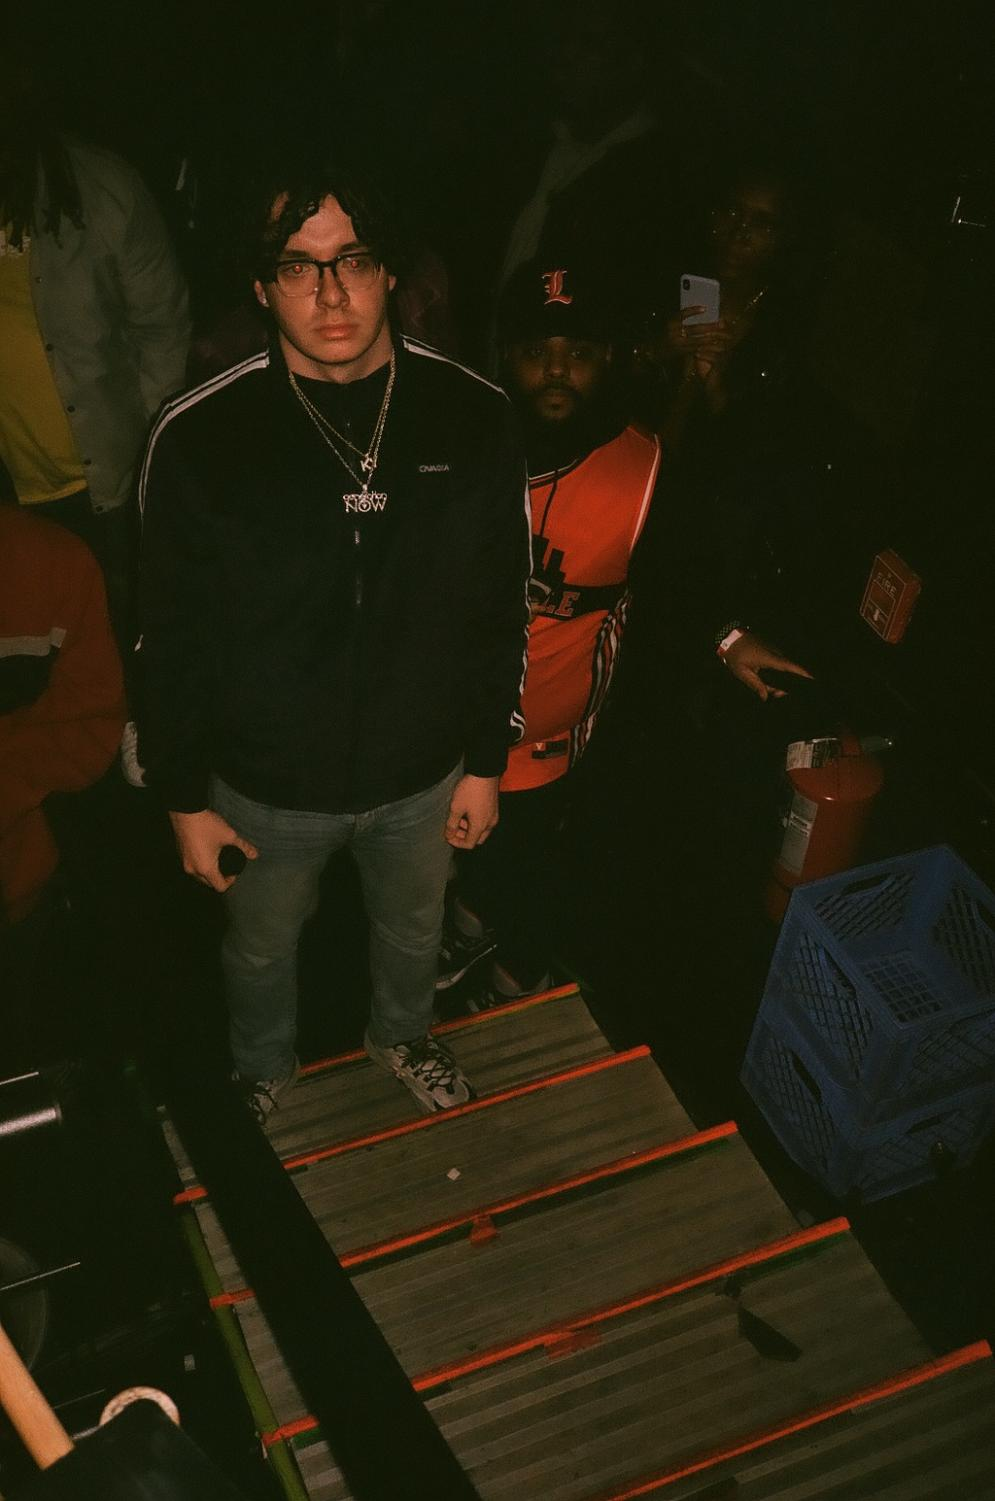 Jack Harlow at his Dec. 29 show at Mercury Ballroom. Photo by Urban Wyatt